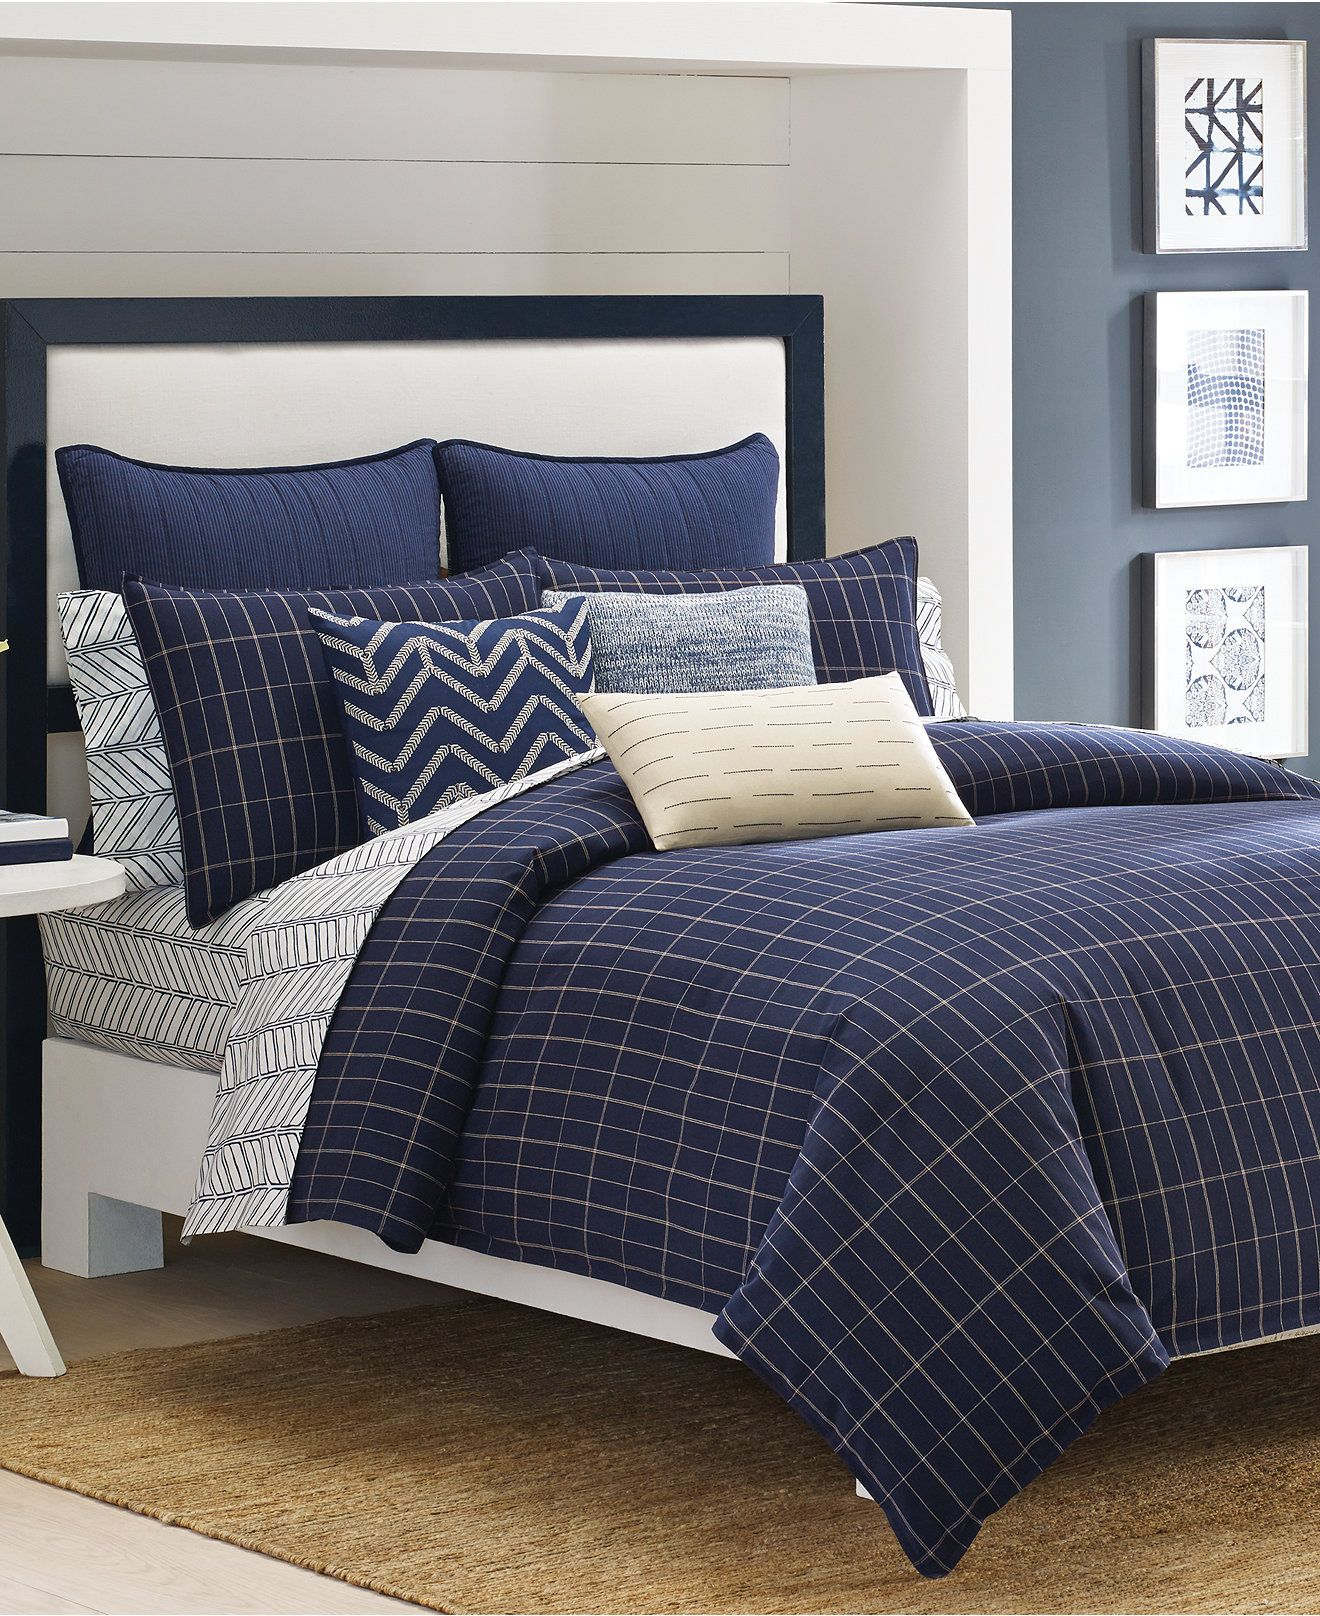 nautical kids bedding size down yellow red top bohemian sets dillards home nautica ivory khaki next cotton collections zi cover comforter notch navy boys king covers duvet quilt